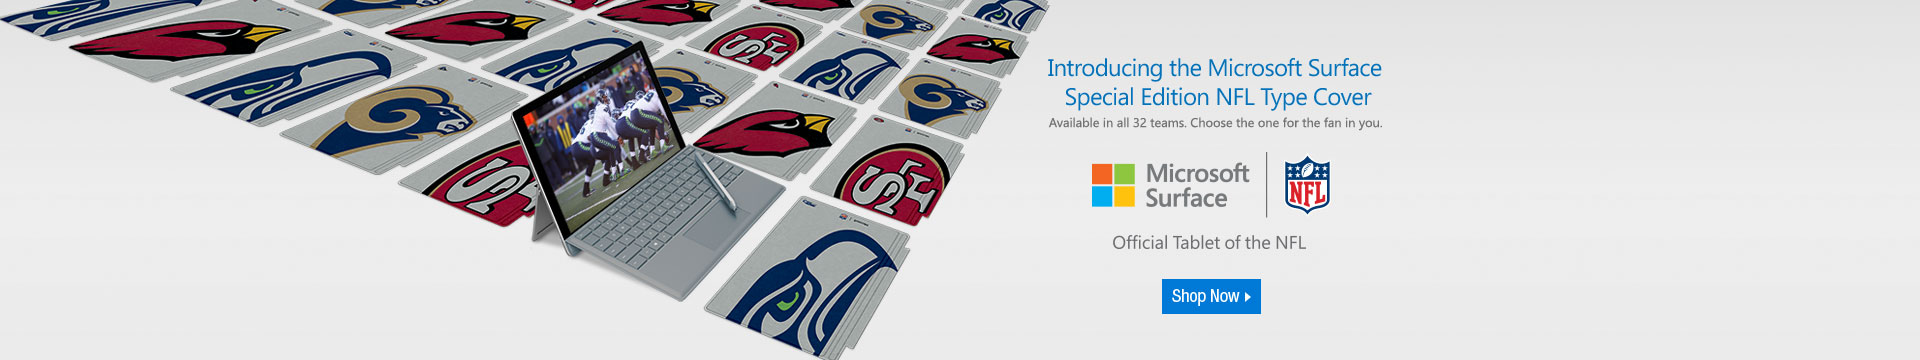 Introducing the Microsoft Surface Special Edition NFL Type Covers